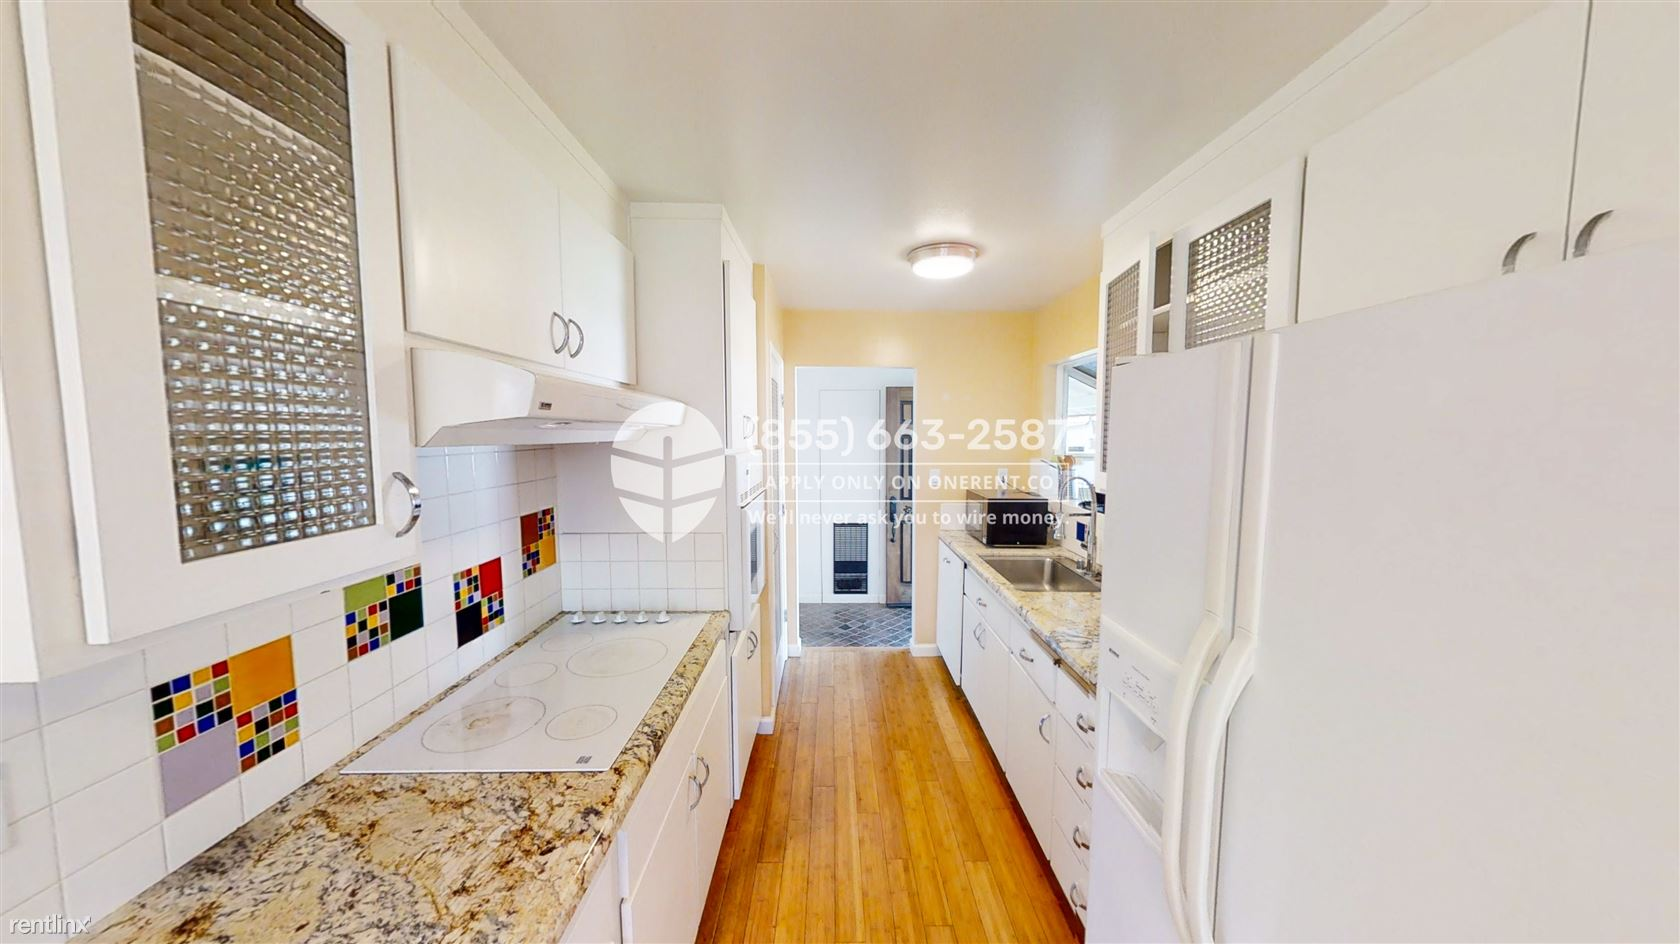 5370 Lafayette Ave for rent